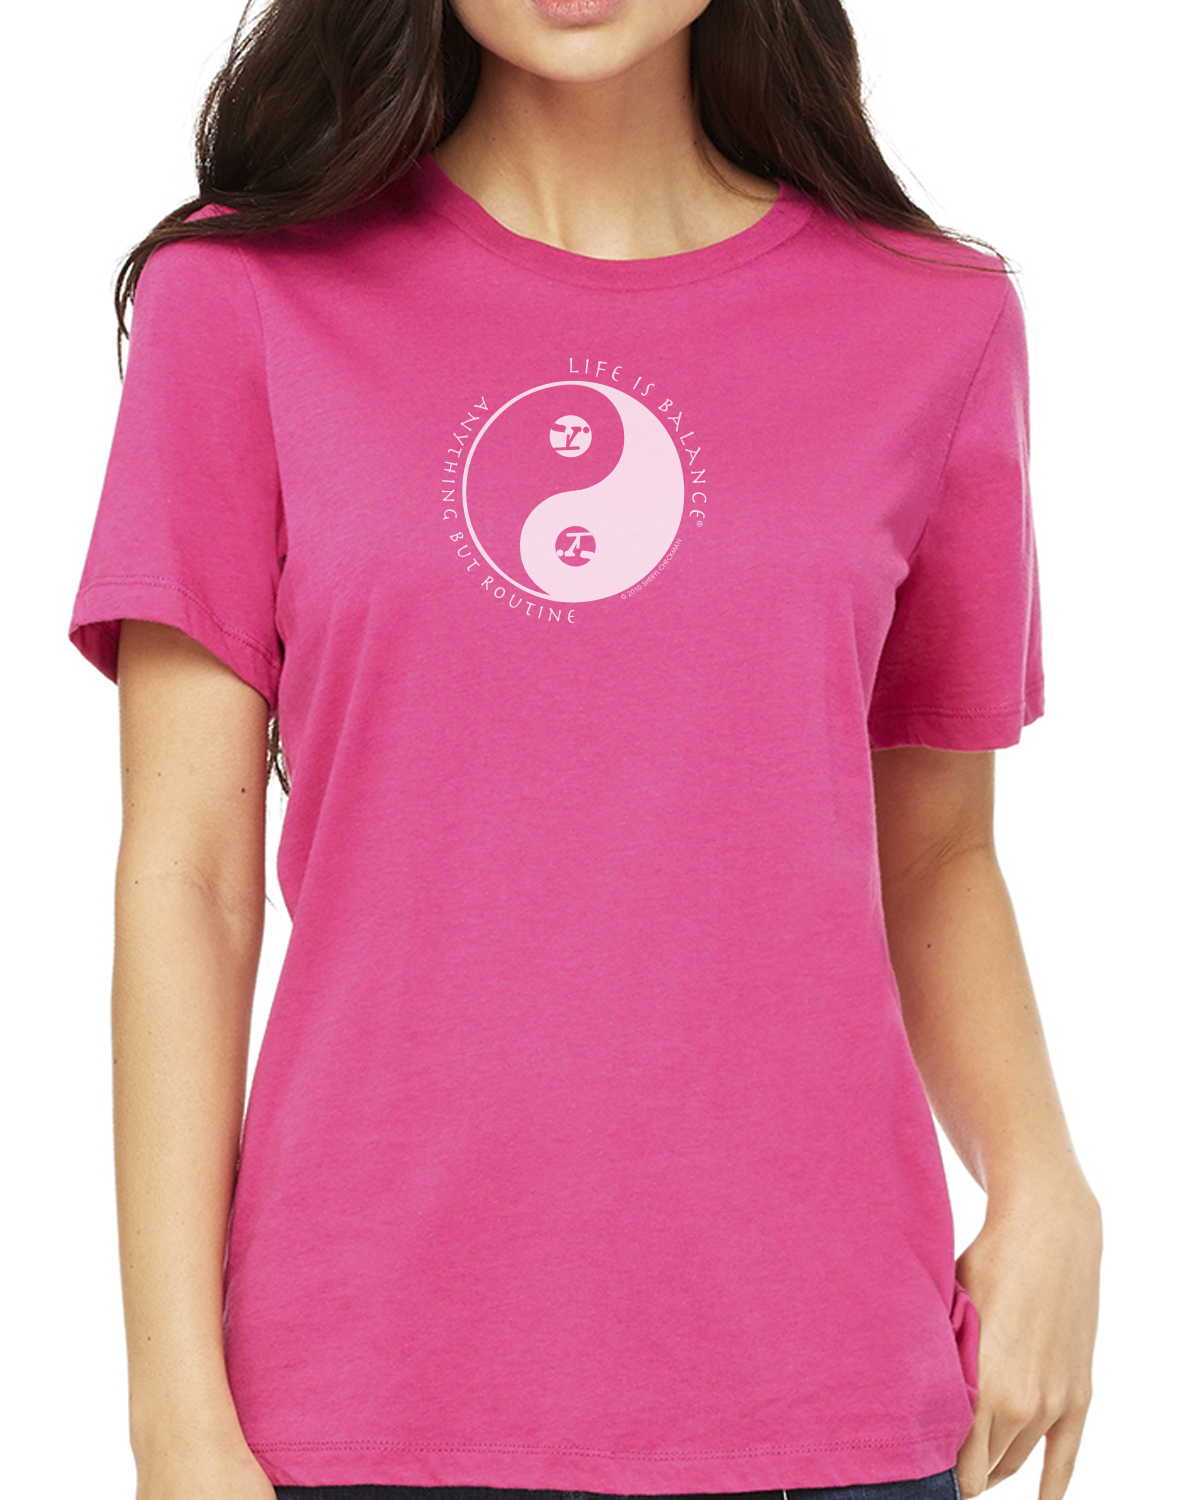 Women's short sleeve gymnastics t-shirt (berry)